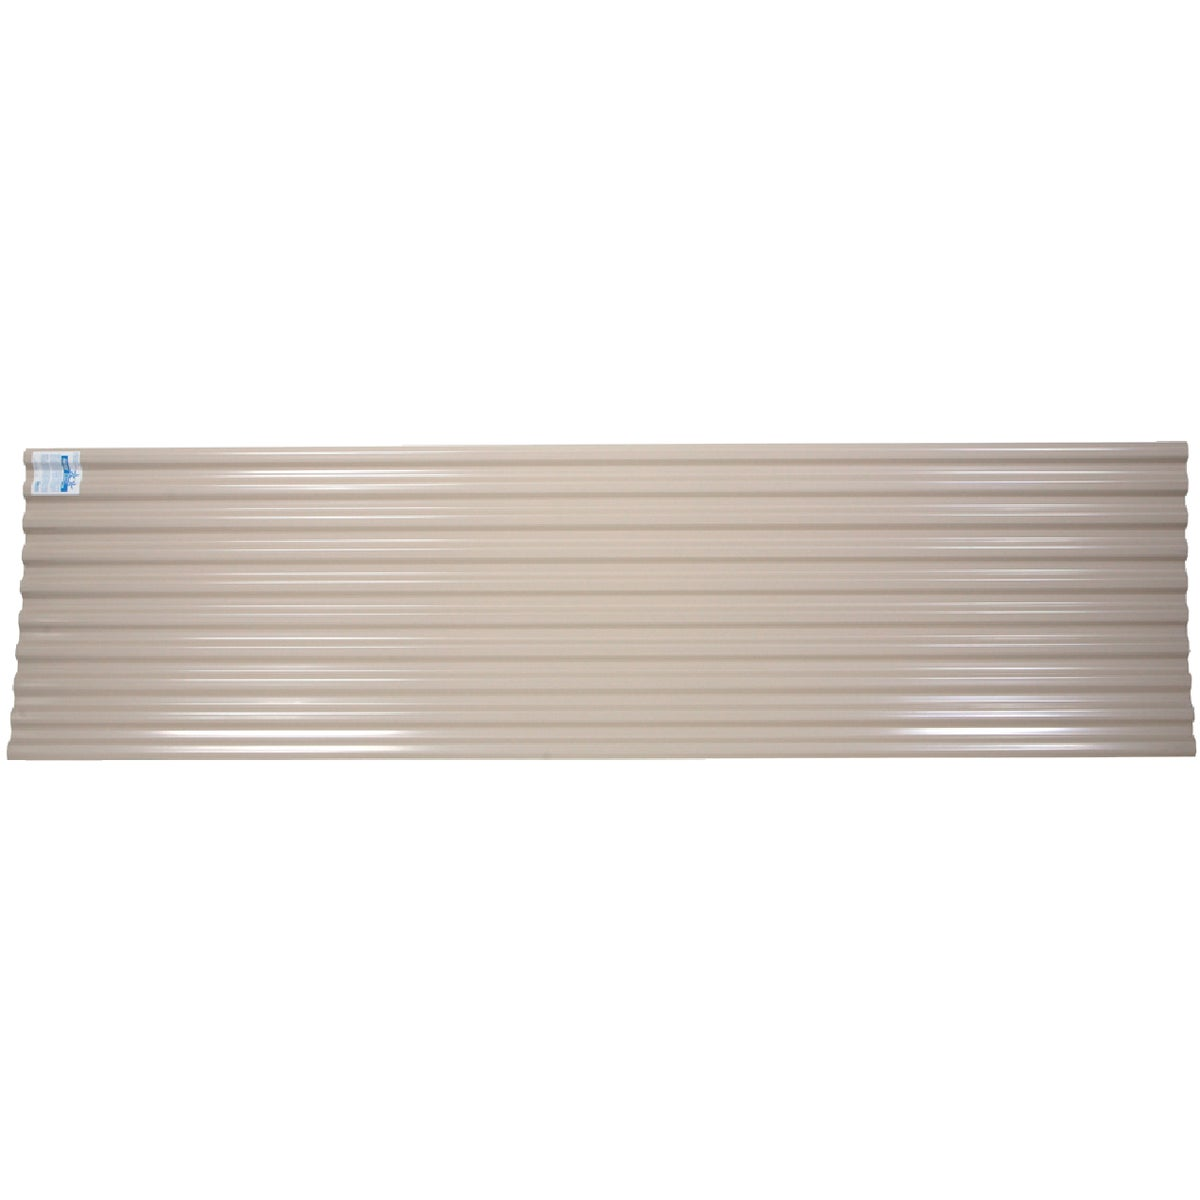 12' TAN CORRUGATED PANEL